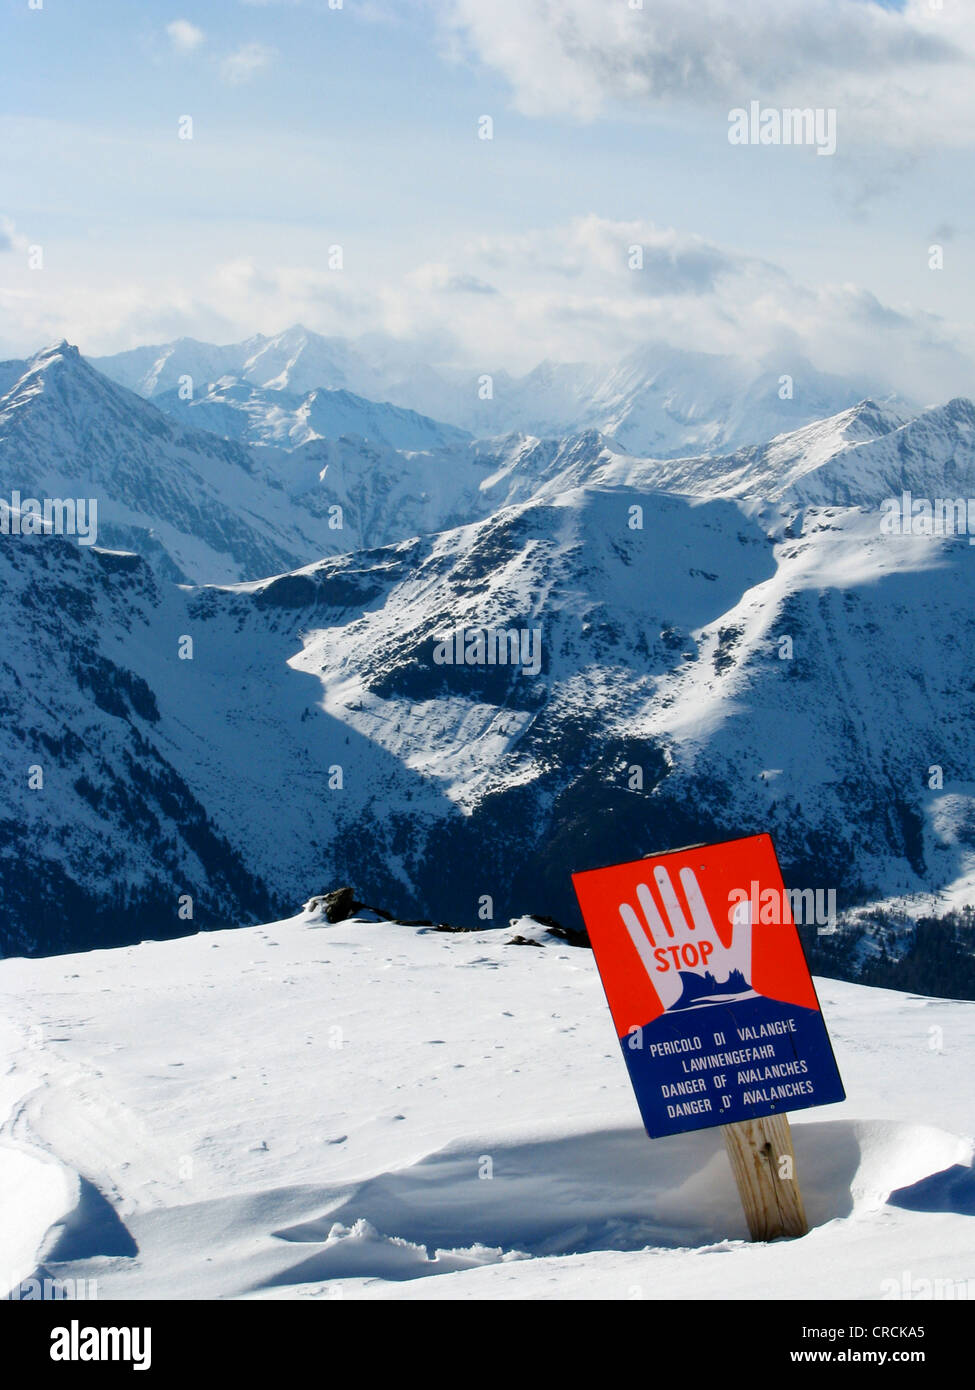 Sign in snowy mountain scenery of a skiing area warning against danger of avalanches, Italy, Suedtirol, Sarntal, - Stock Image